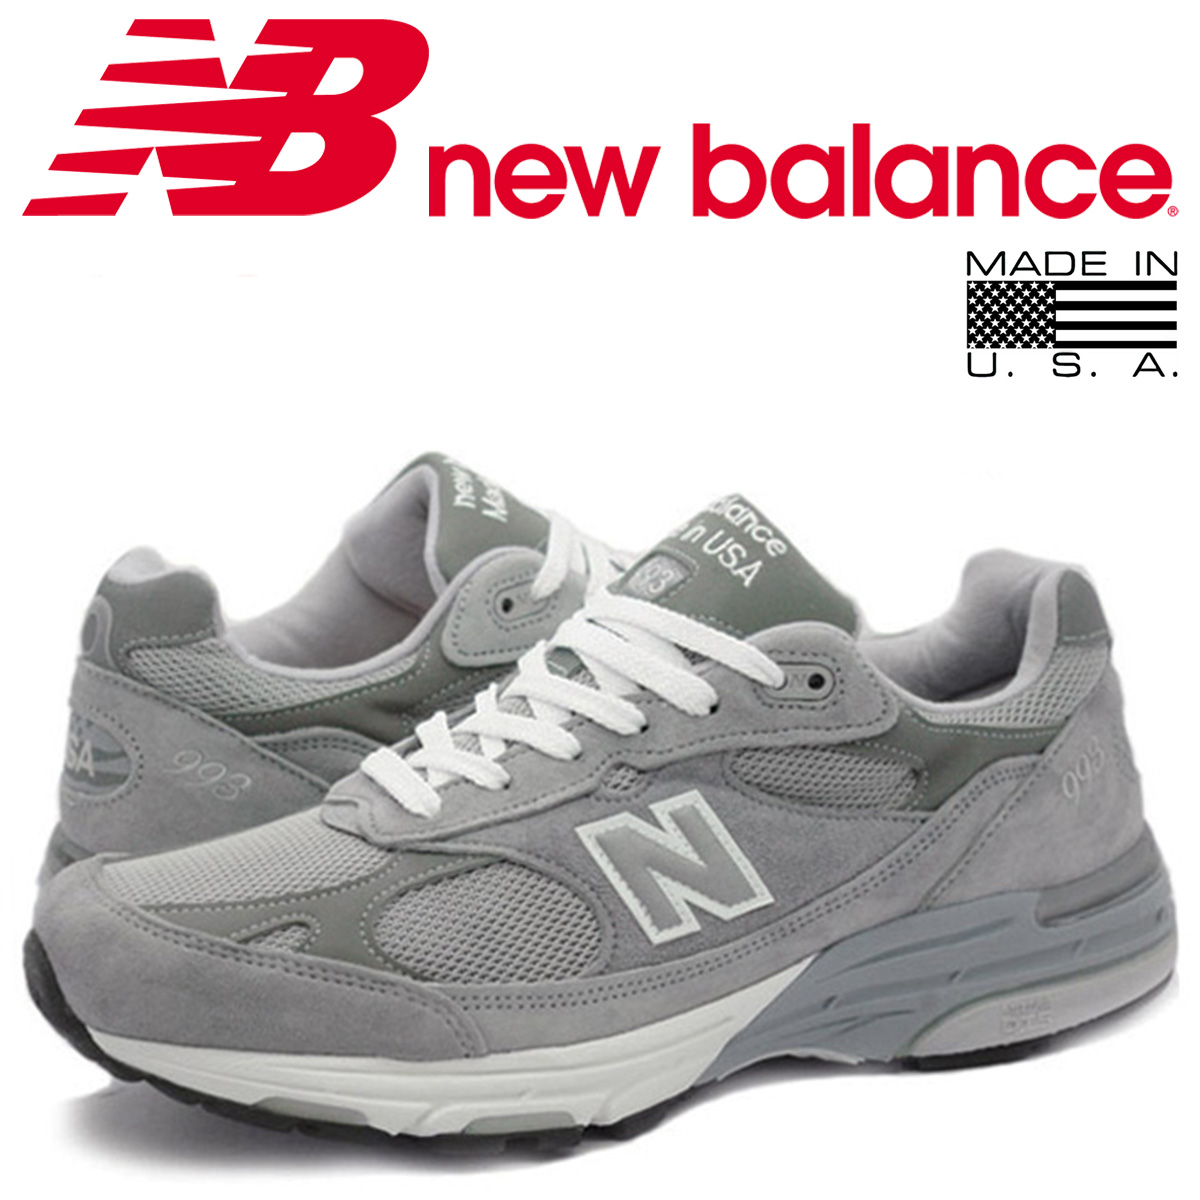 3e6e0e40a8515 [NEW BALANCE which wears it, and has a good reputation for a feeling, and  is loved for many years by sneakers freak]